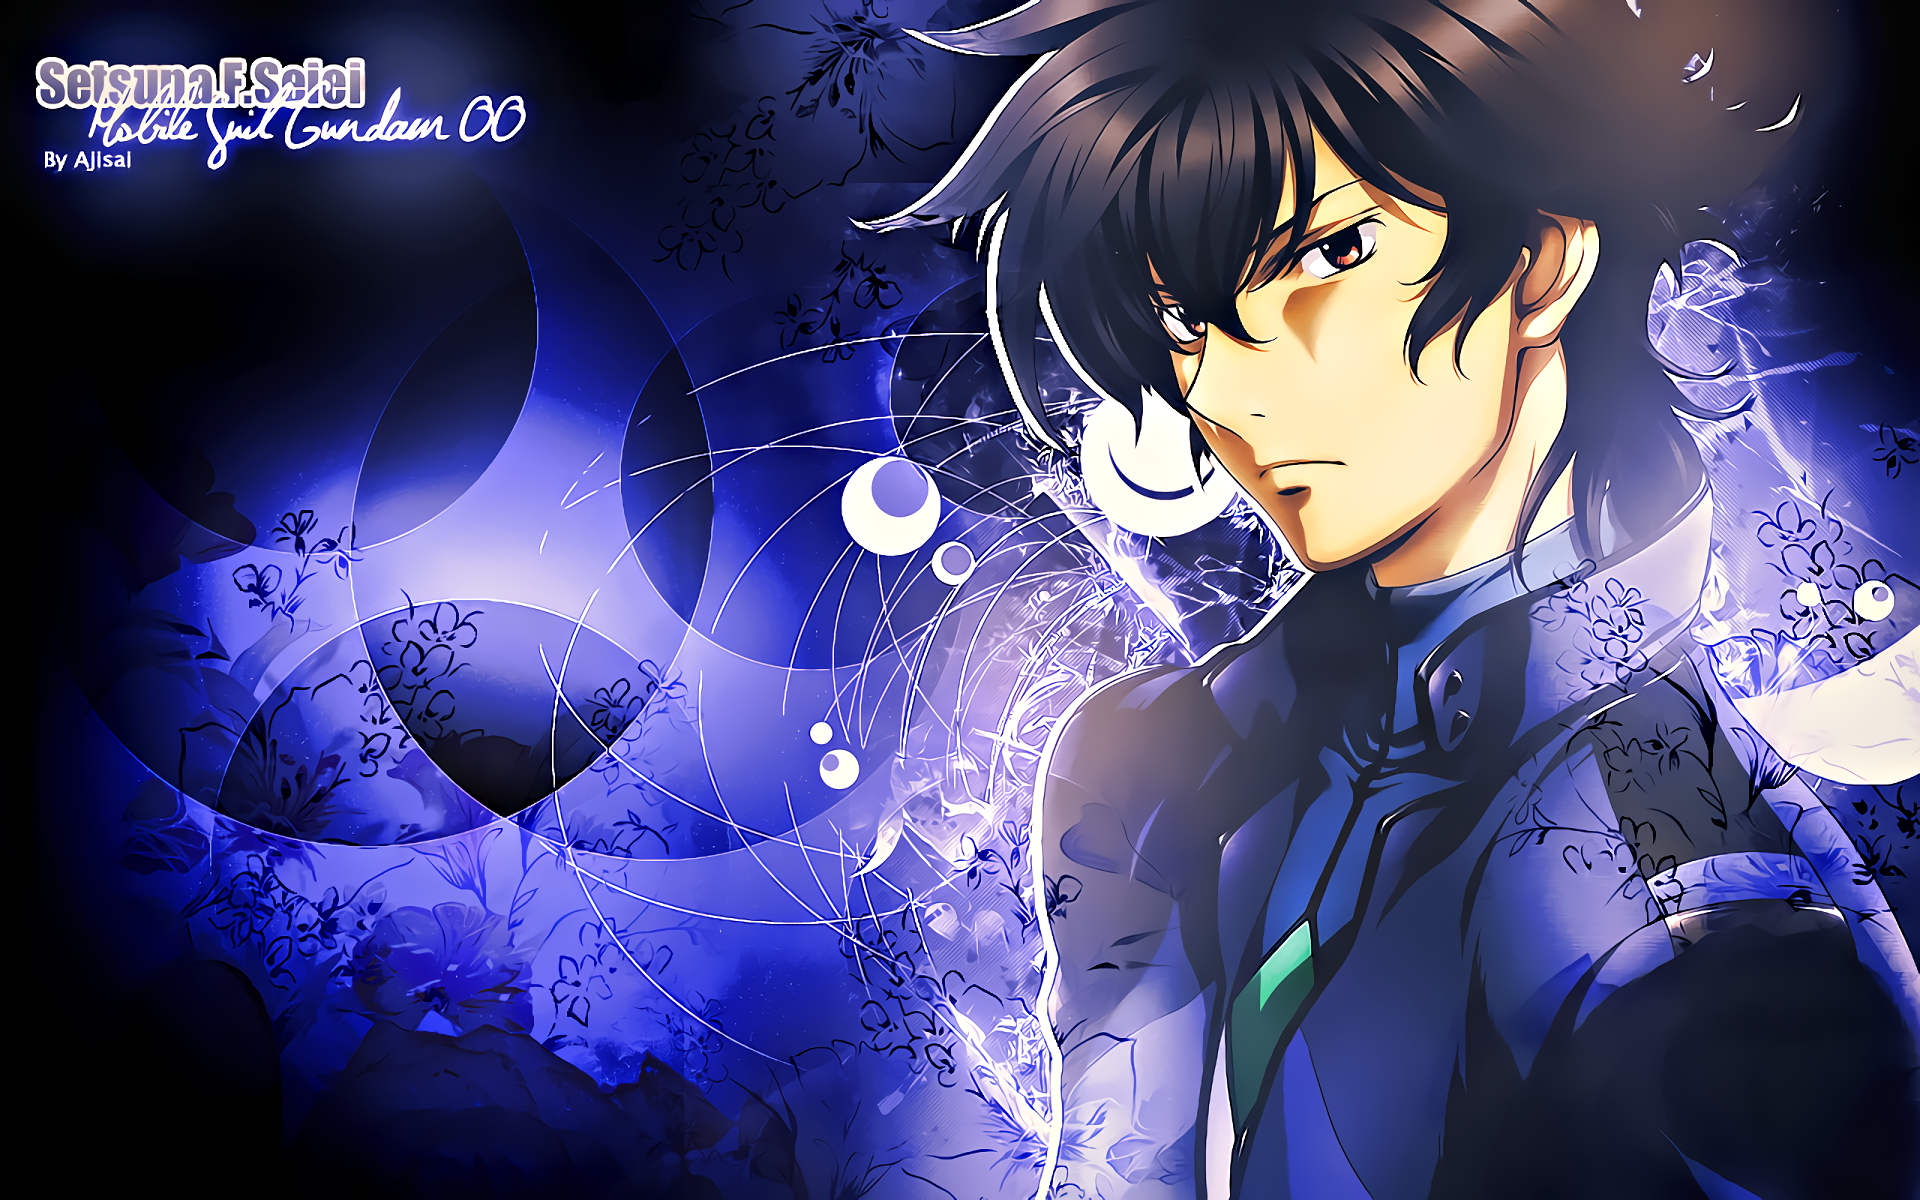 Mobile Suit Gundam 00 Hd Wallpaper Background Image 1920x1200 Id 737304 Wallpaper Abyss